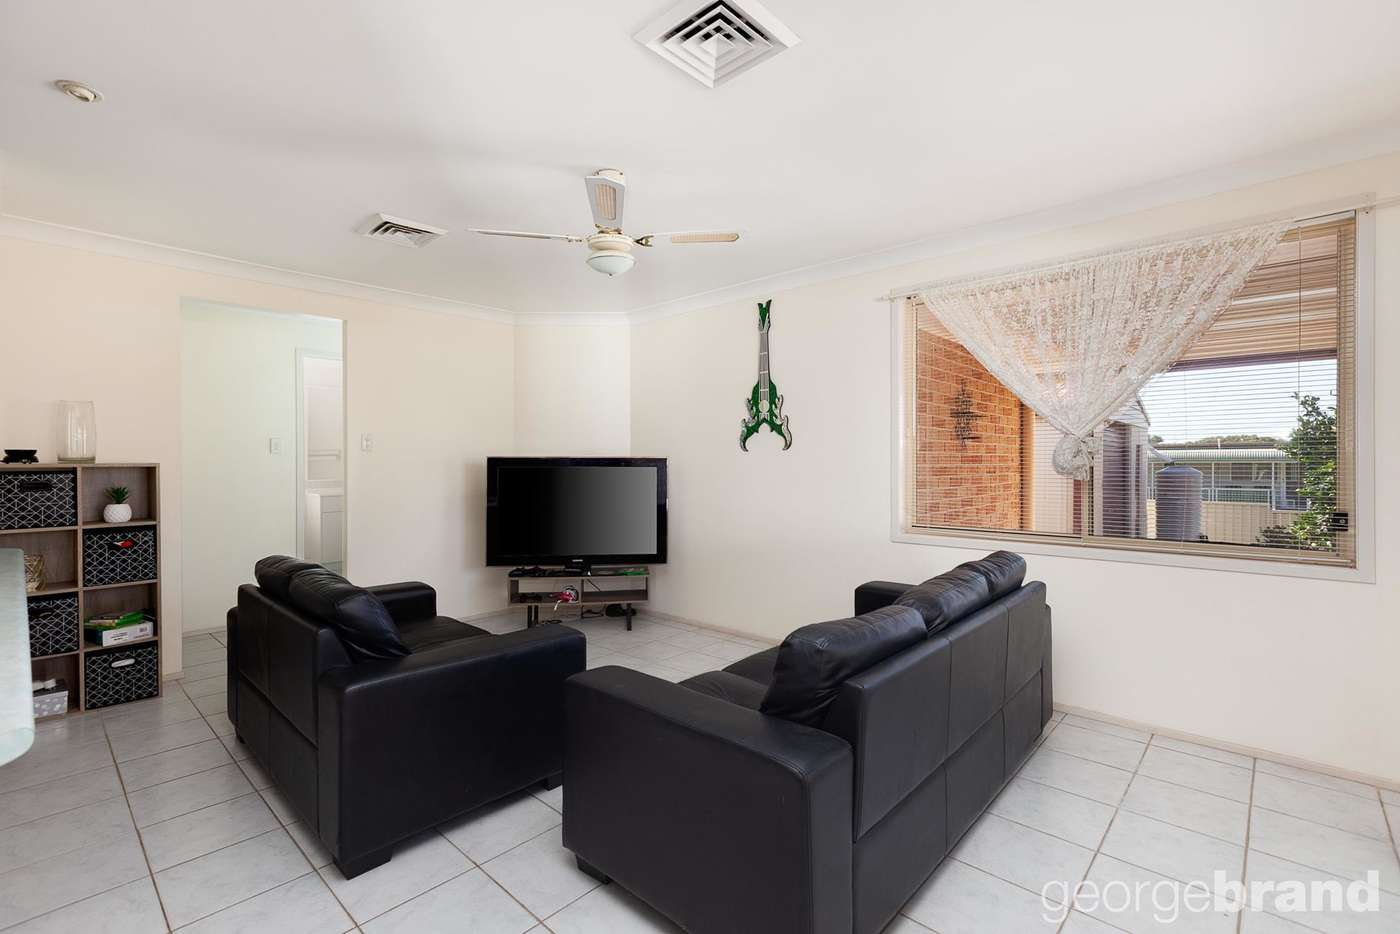 Fifth view of Homely house listing, 66 Yeramba Road, Summerland Point NSW 2259